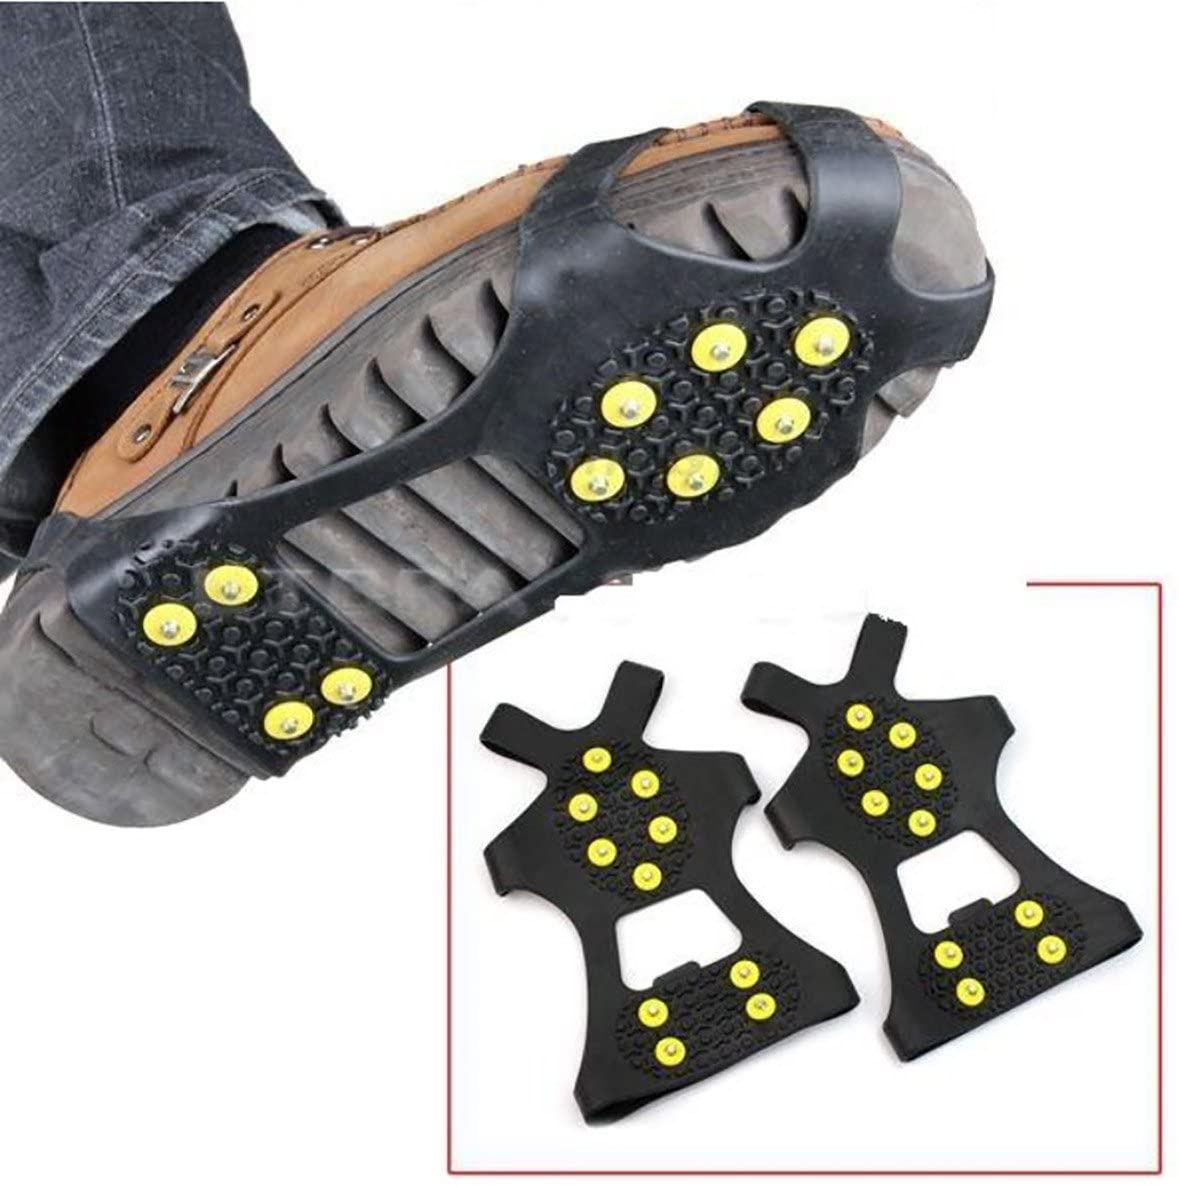 2Pcs Non-slip shoe cover Ice Snow Grips Over Shoe Boot Traction Cleat Rubber Spikes Anti Slip Mountaineering Non-slip Shoe Cover 10-Stud Slip-on Stretch Footwear (Medium (Shoes Size:W 7-10/M 5-8))